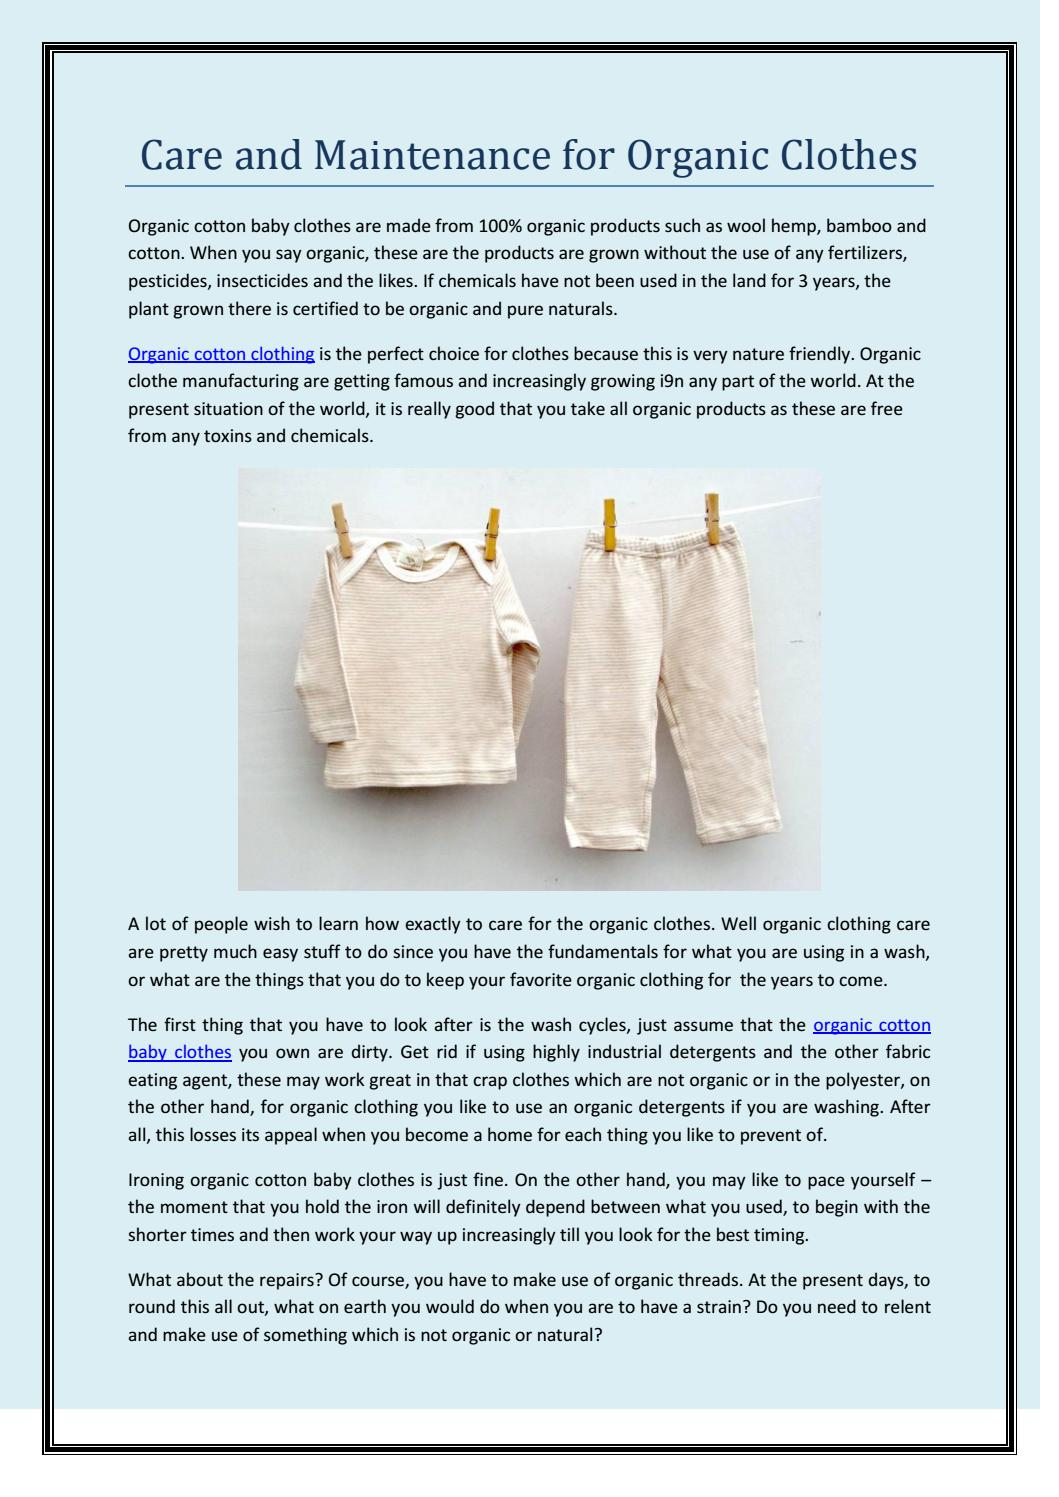 Care And Maintenance For Organic Clothes By Tilly And Jasper Issuu